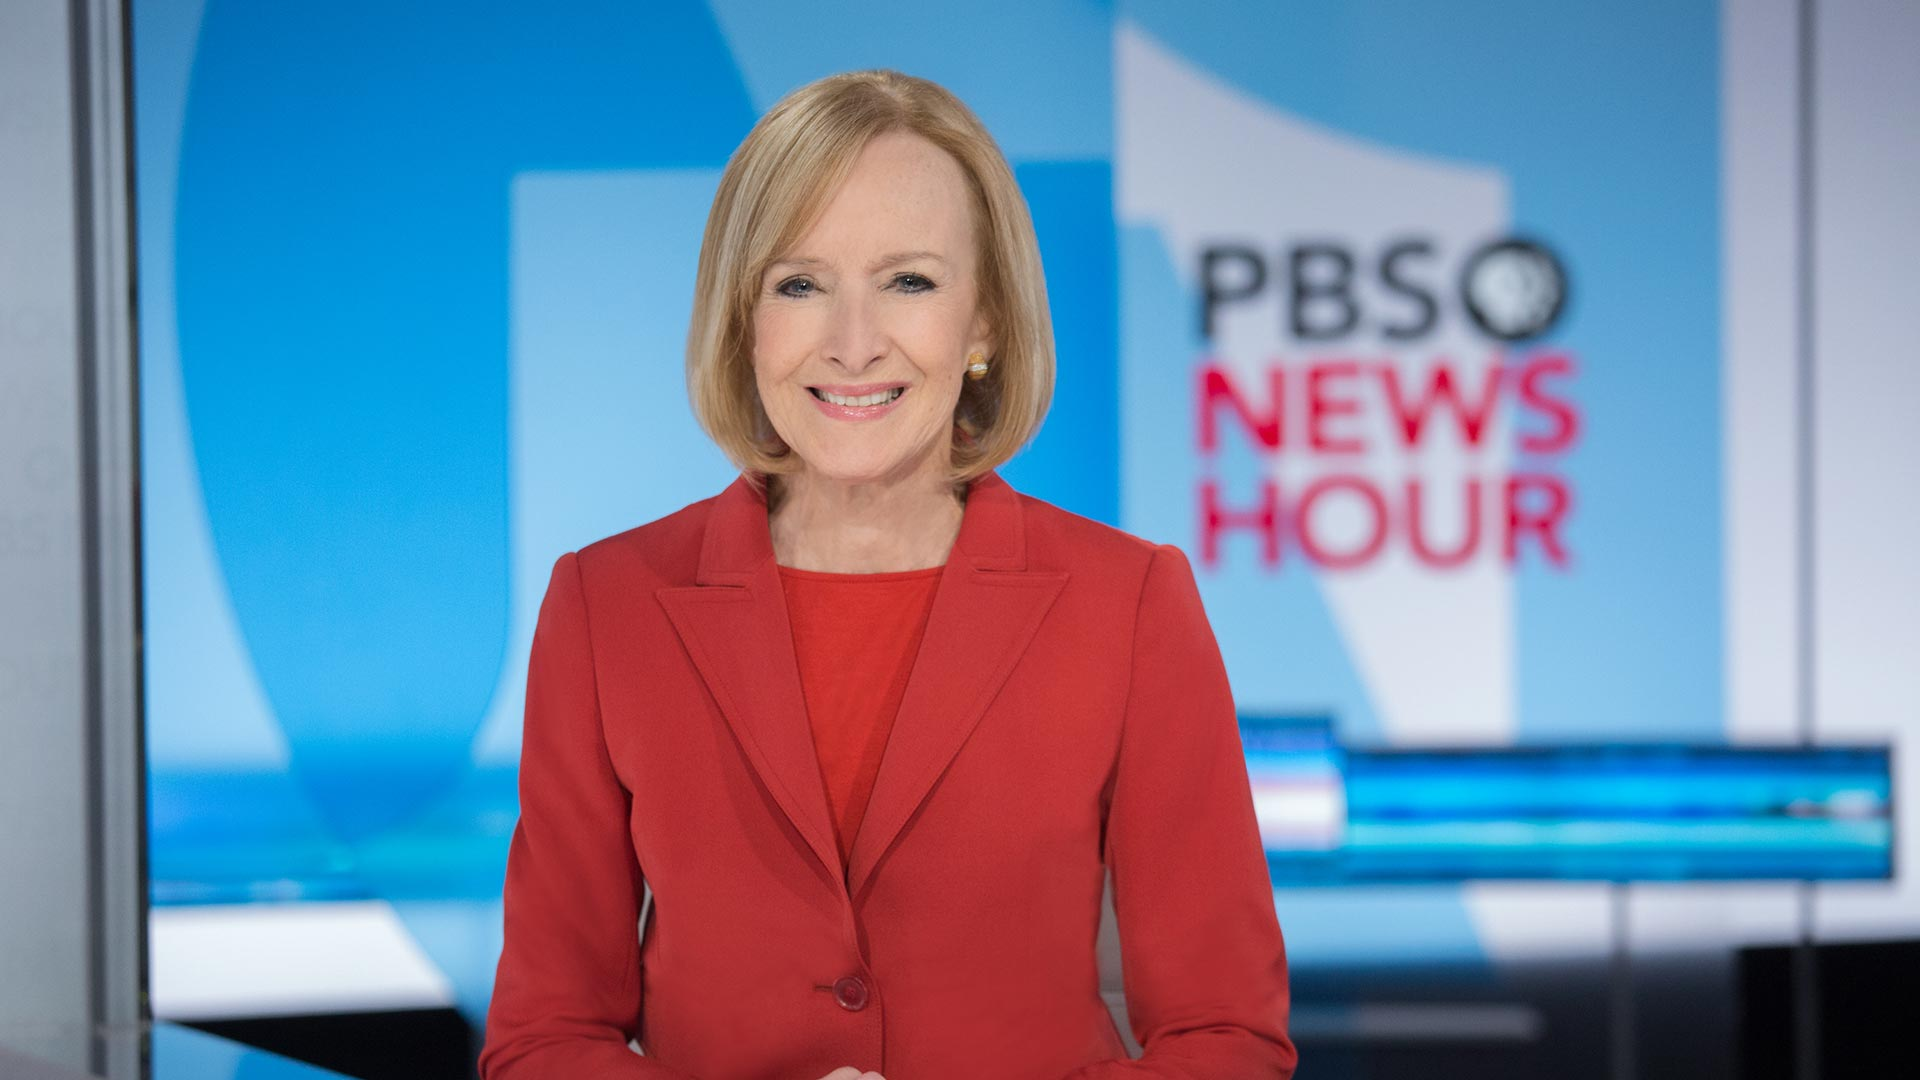 PBS Newshour hero